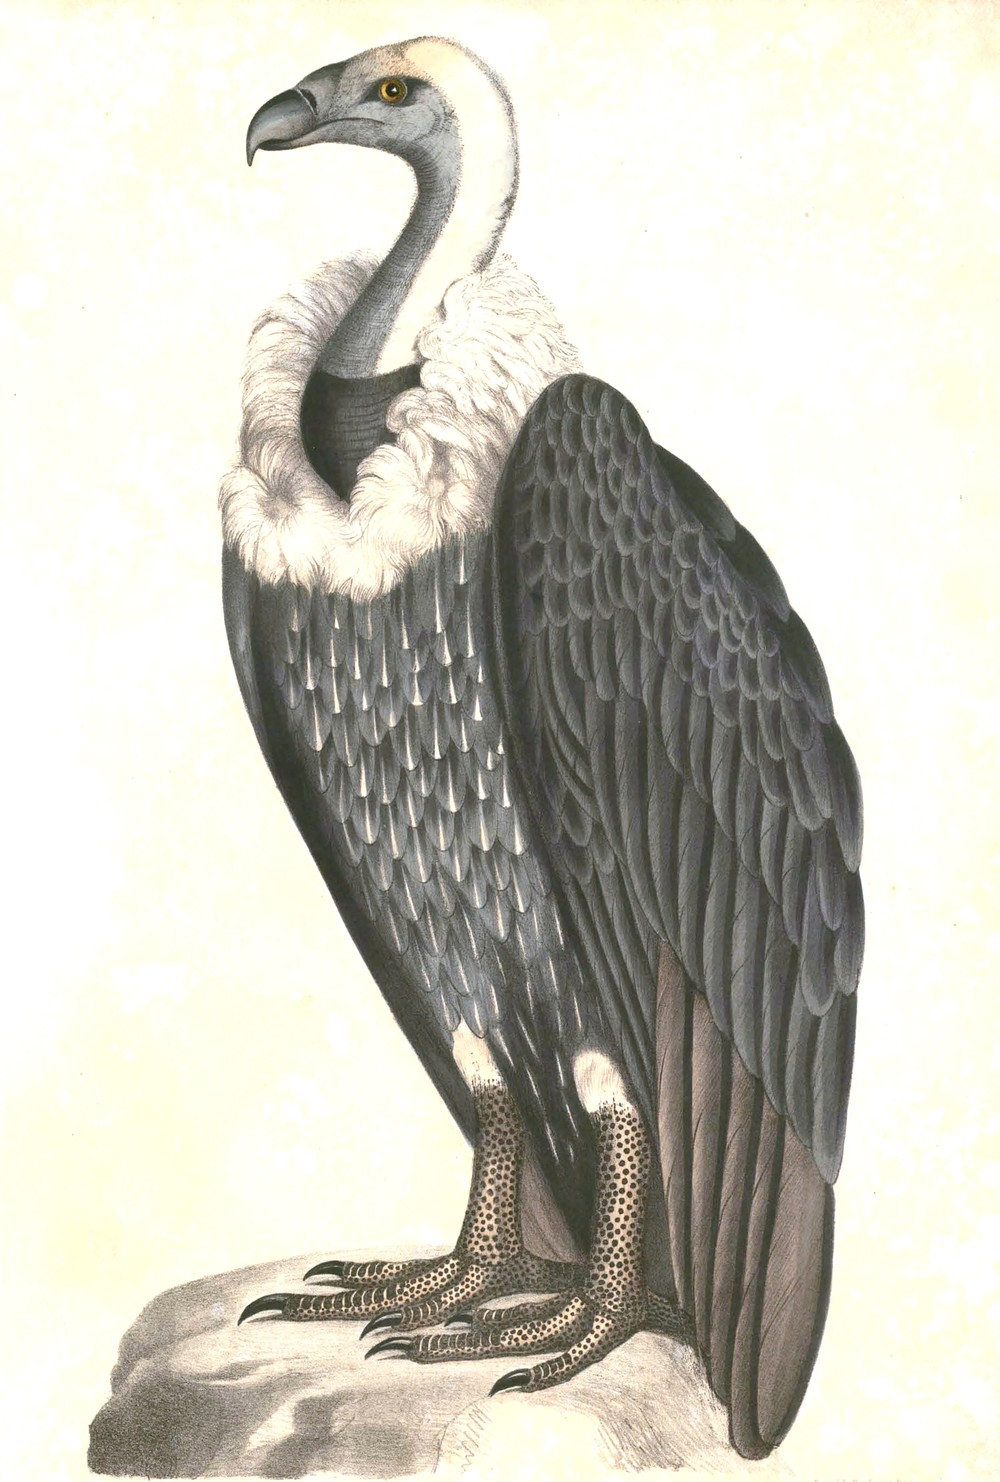 Gyps Bengalensis, Thomas Hardwicke, Illustrations of Indian Zoology - Volume I